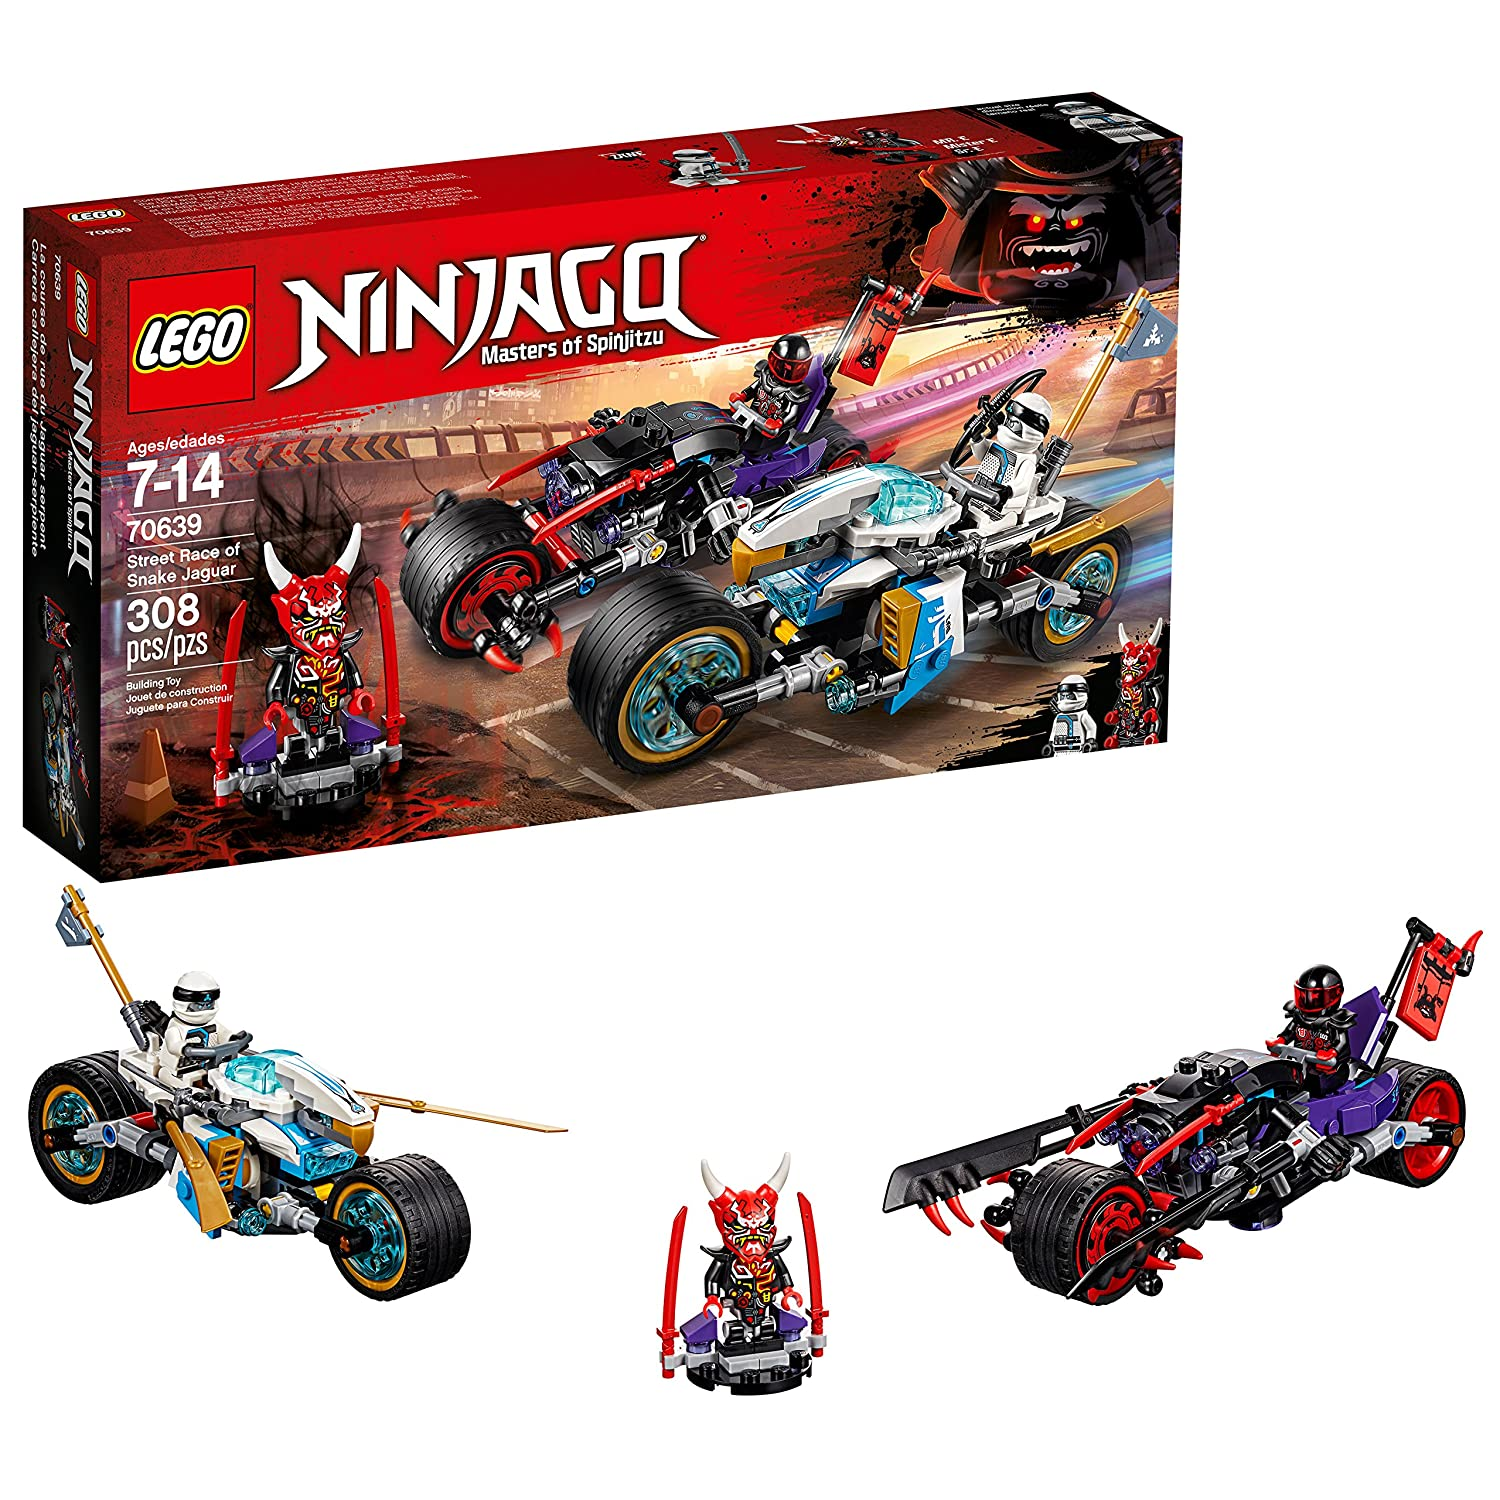 LEGO Ninjago 6212310 Street Race of Snake Jaguar 70639 Building Kit (308 Piece)